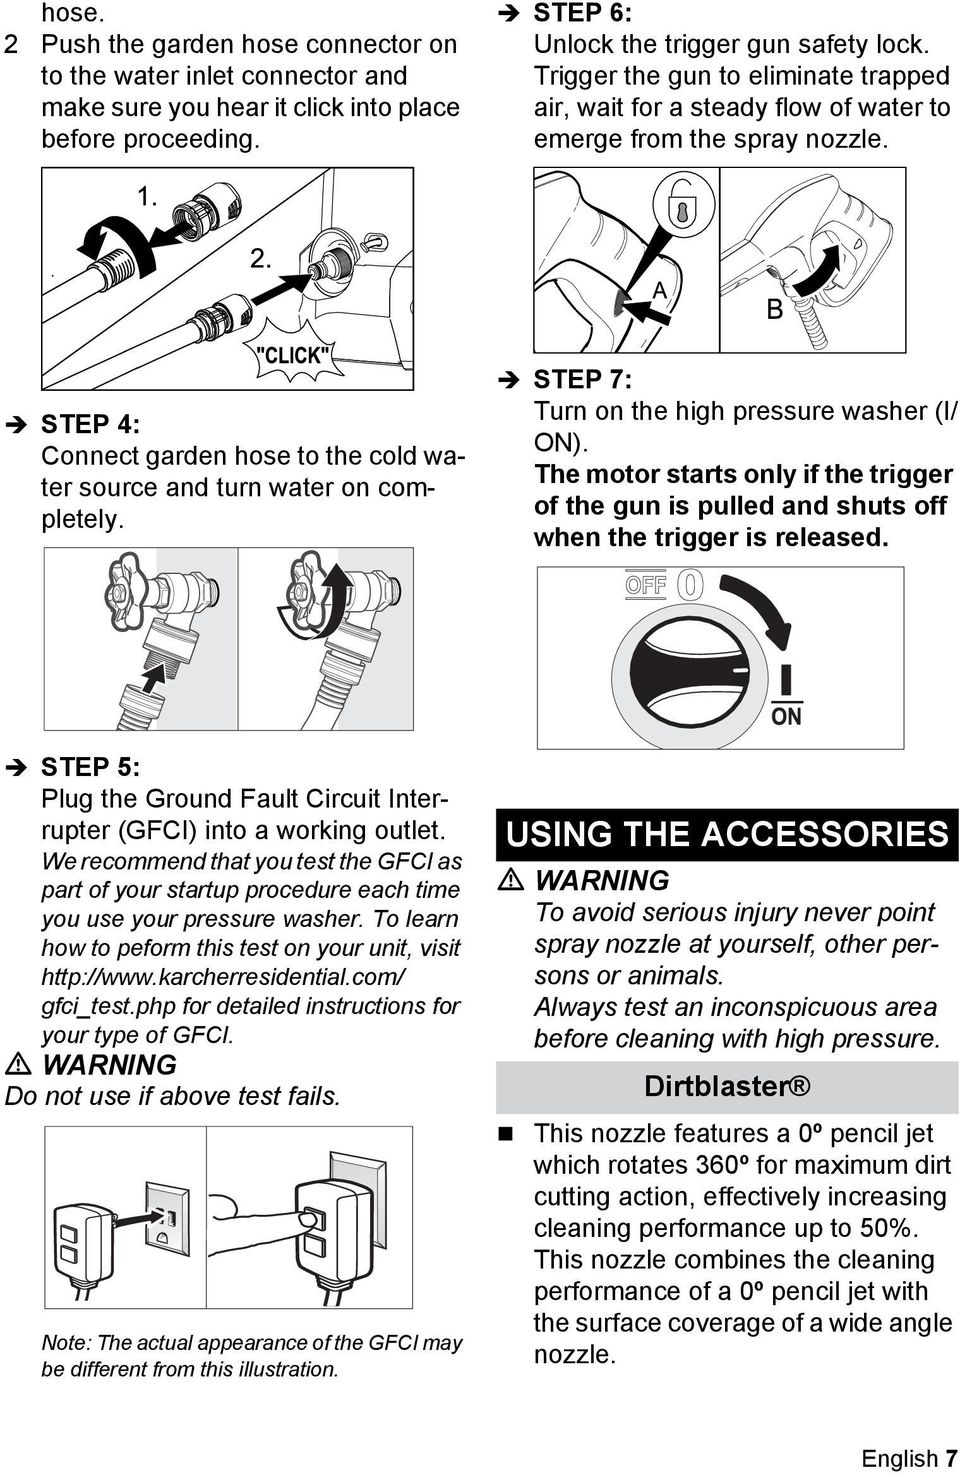 STEP 7: Turn on the high pressure washer (I/ ON). The motor starts only if the trigger of the gun is pulled and shuts off when the trigger is released.